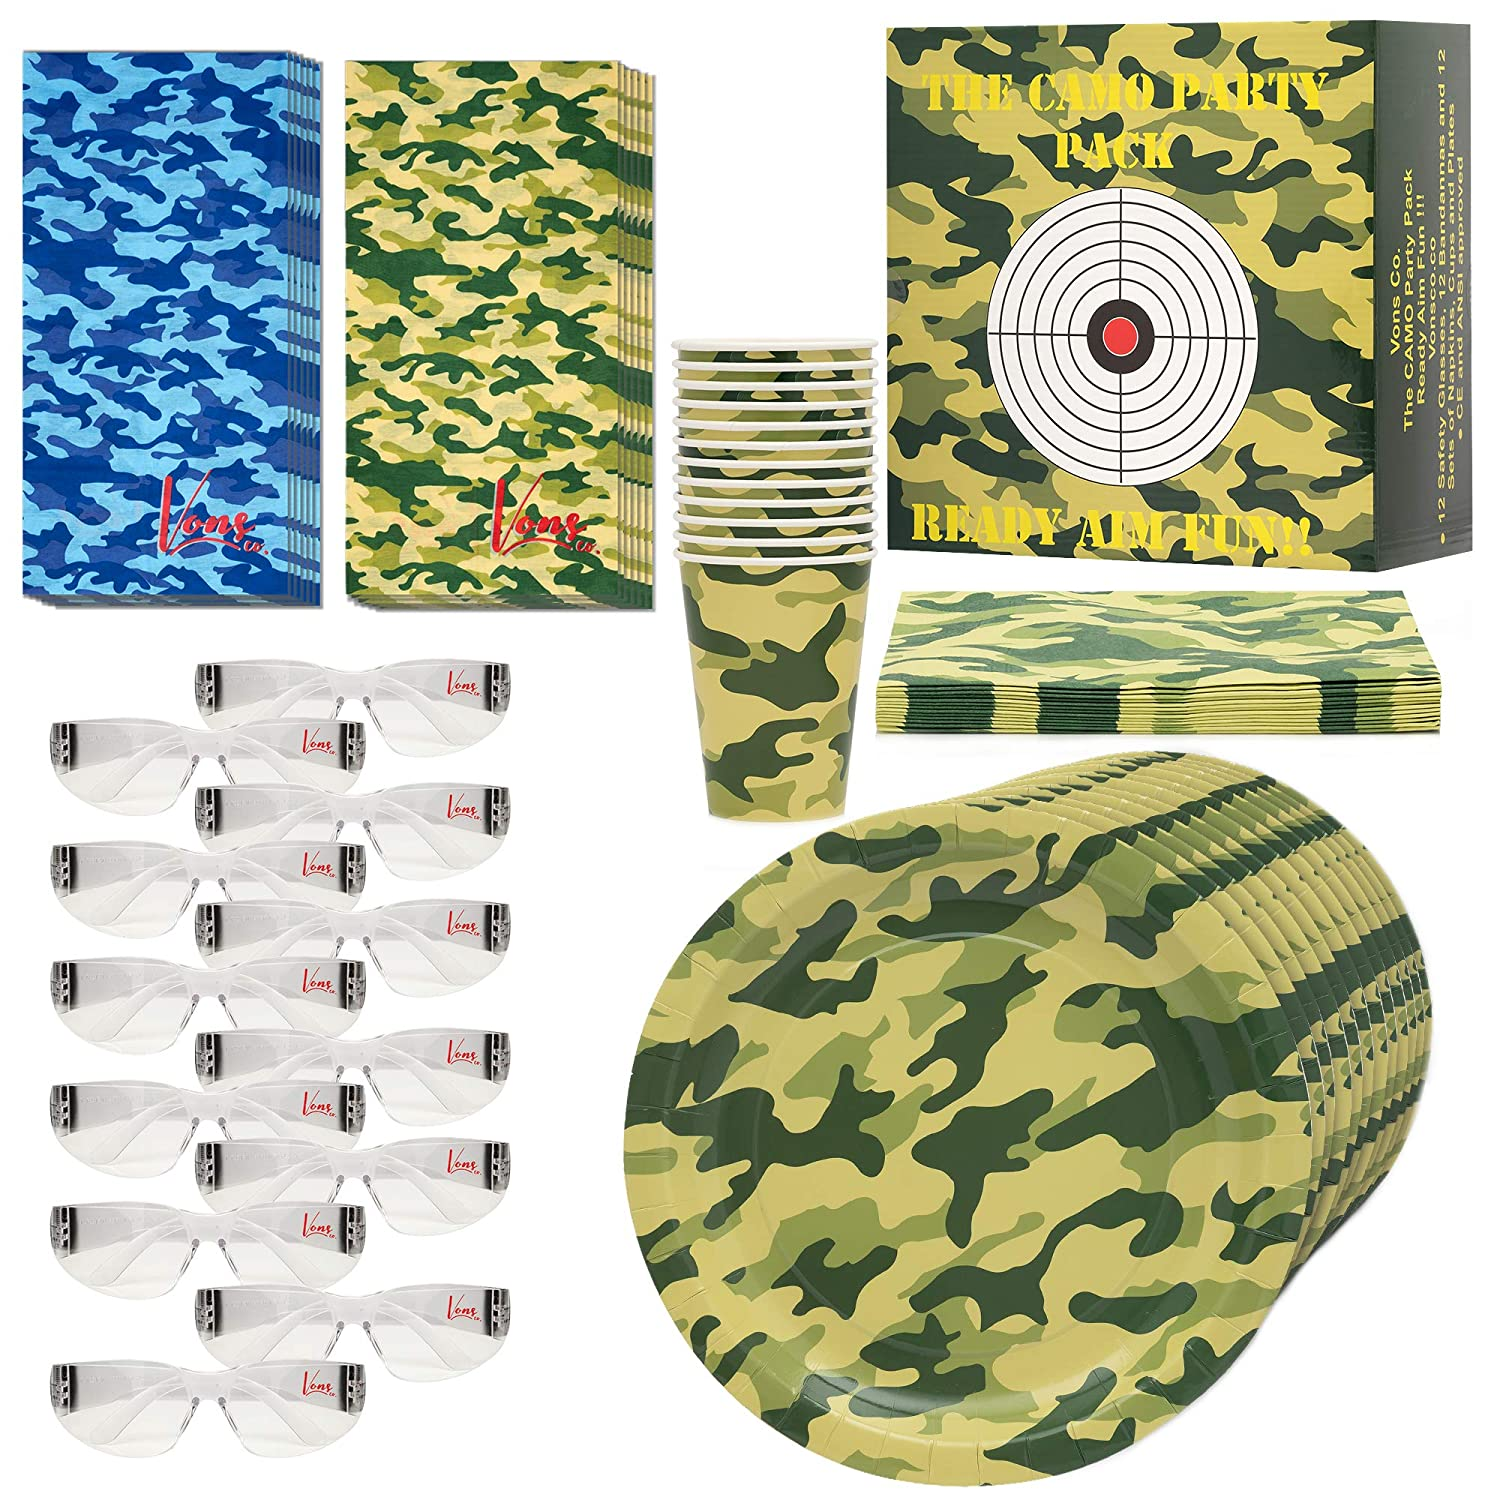 Napkins Cups 60 piece - Safety Glasses Target Camouflage Bandanas Nerf Themed Disposable Plates 12 pack Vons co Party Pack For Nerf